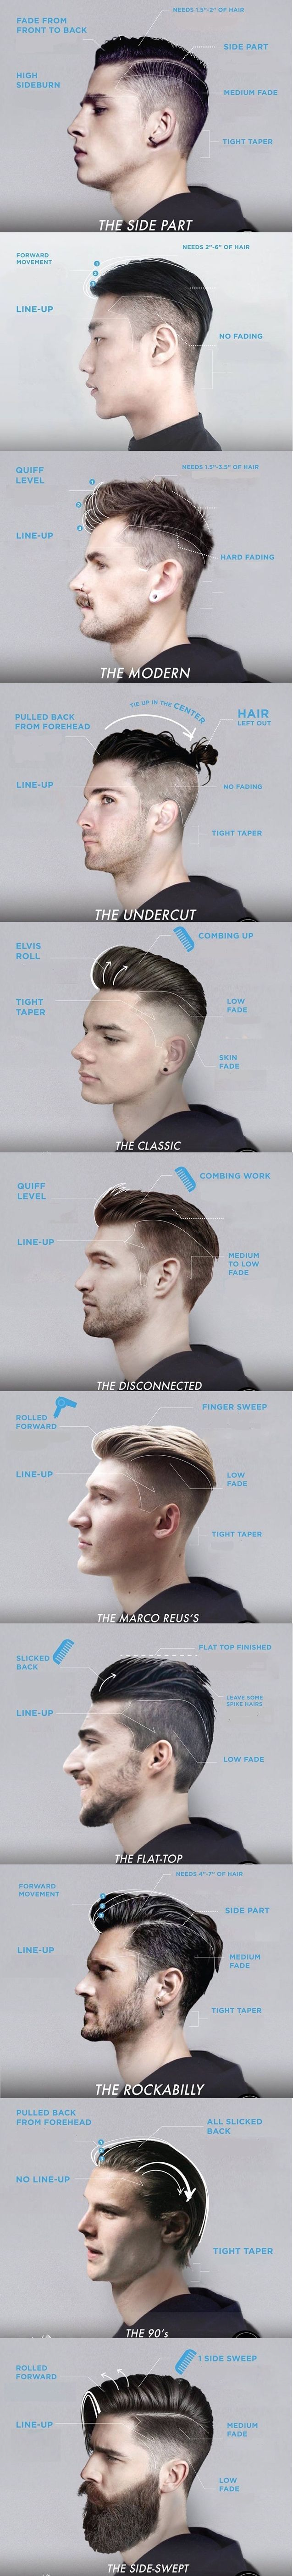 9 Dashing Men's Hairstyles 2015